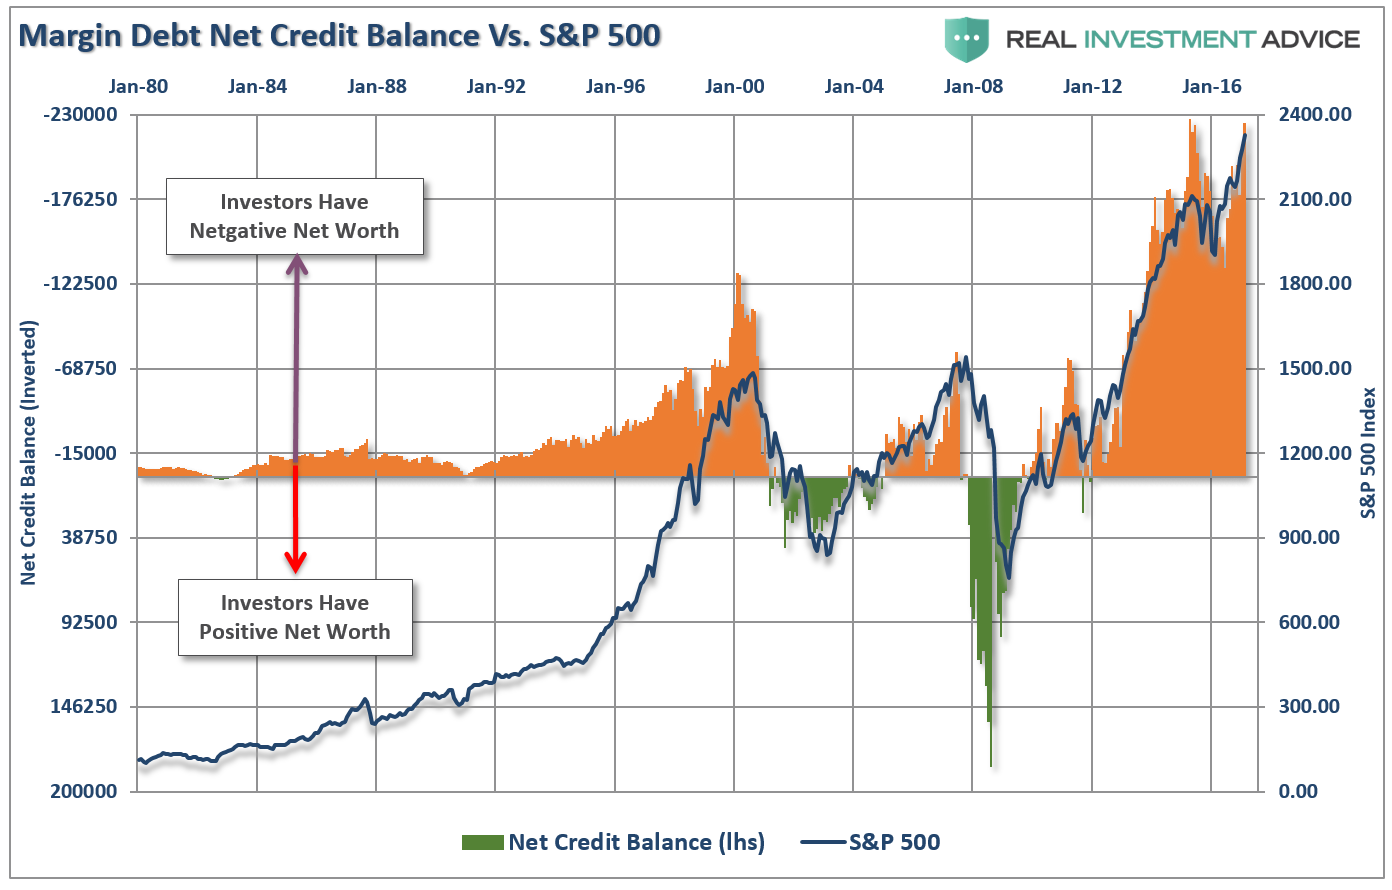 Margin Debt Reductions